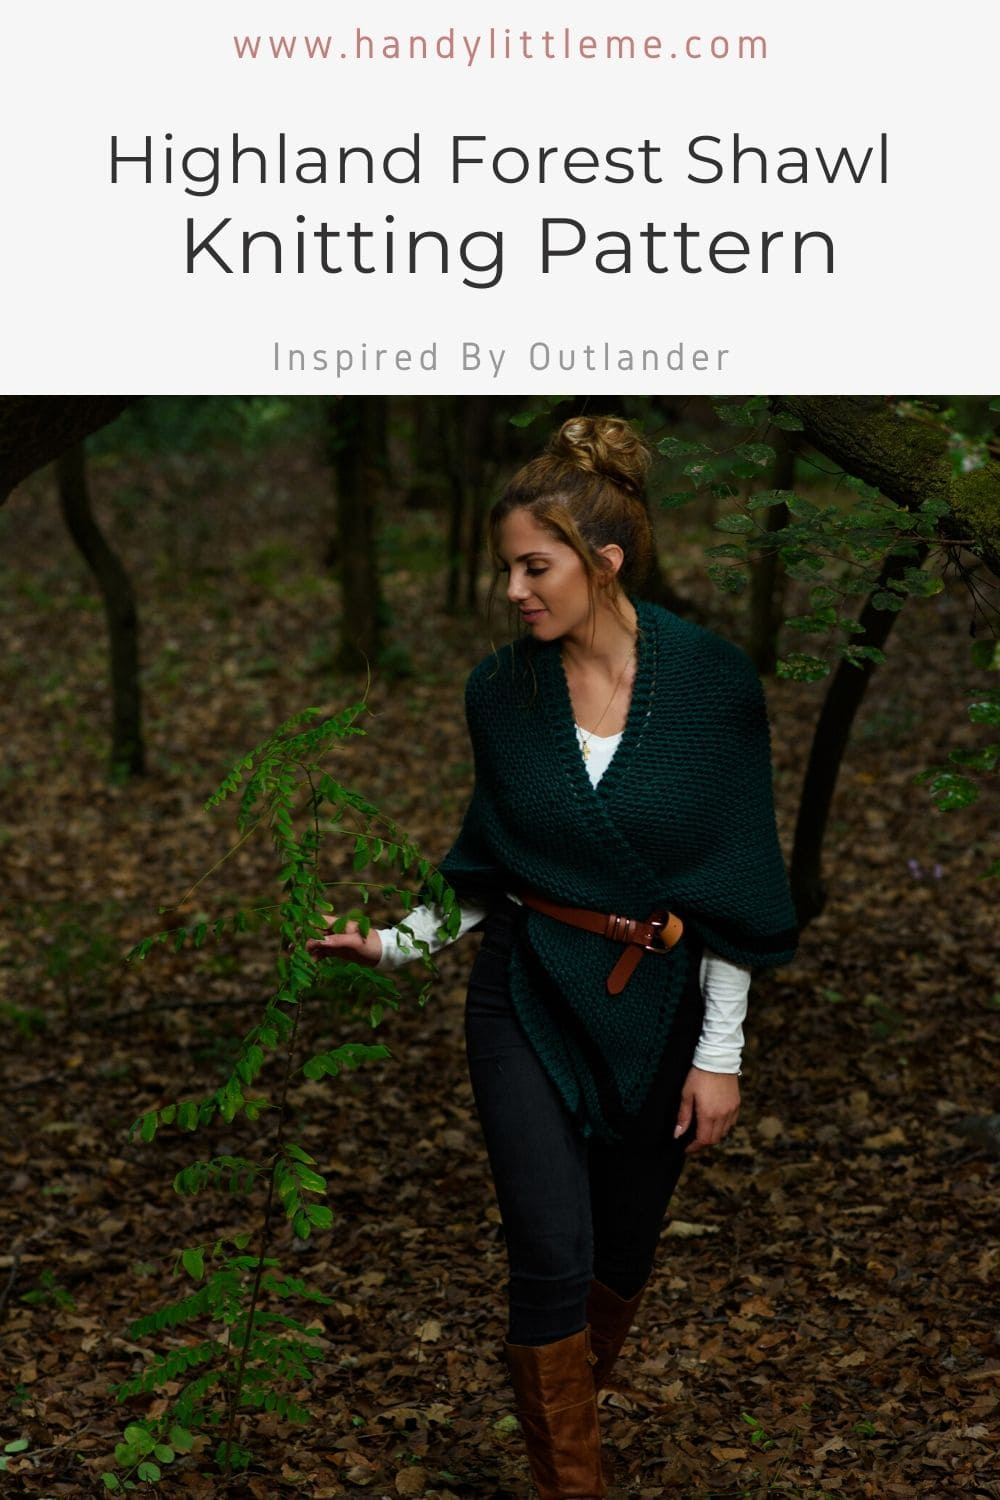 Highland forest shawl knitting pattern